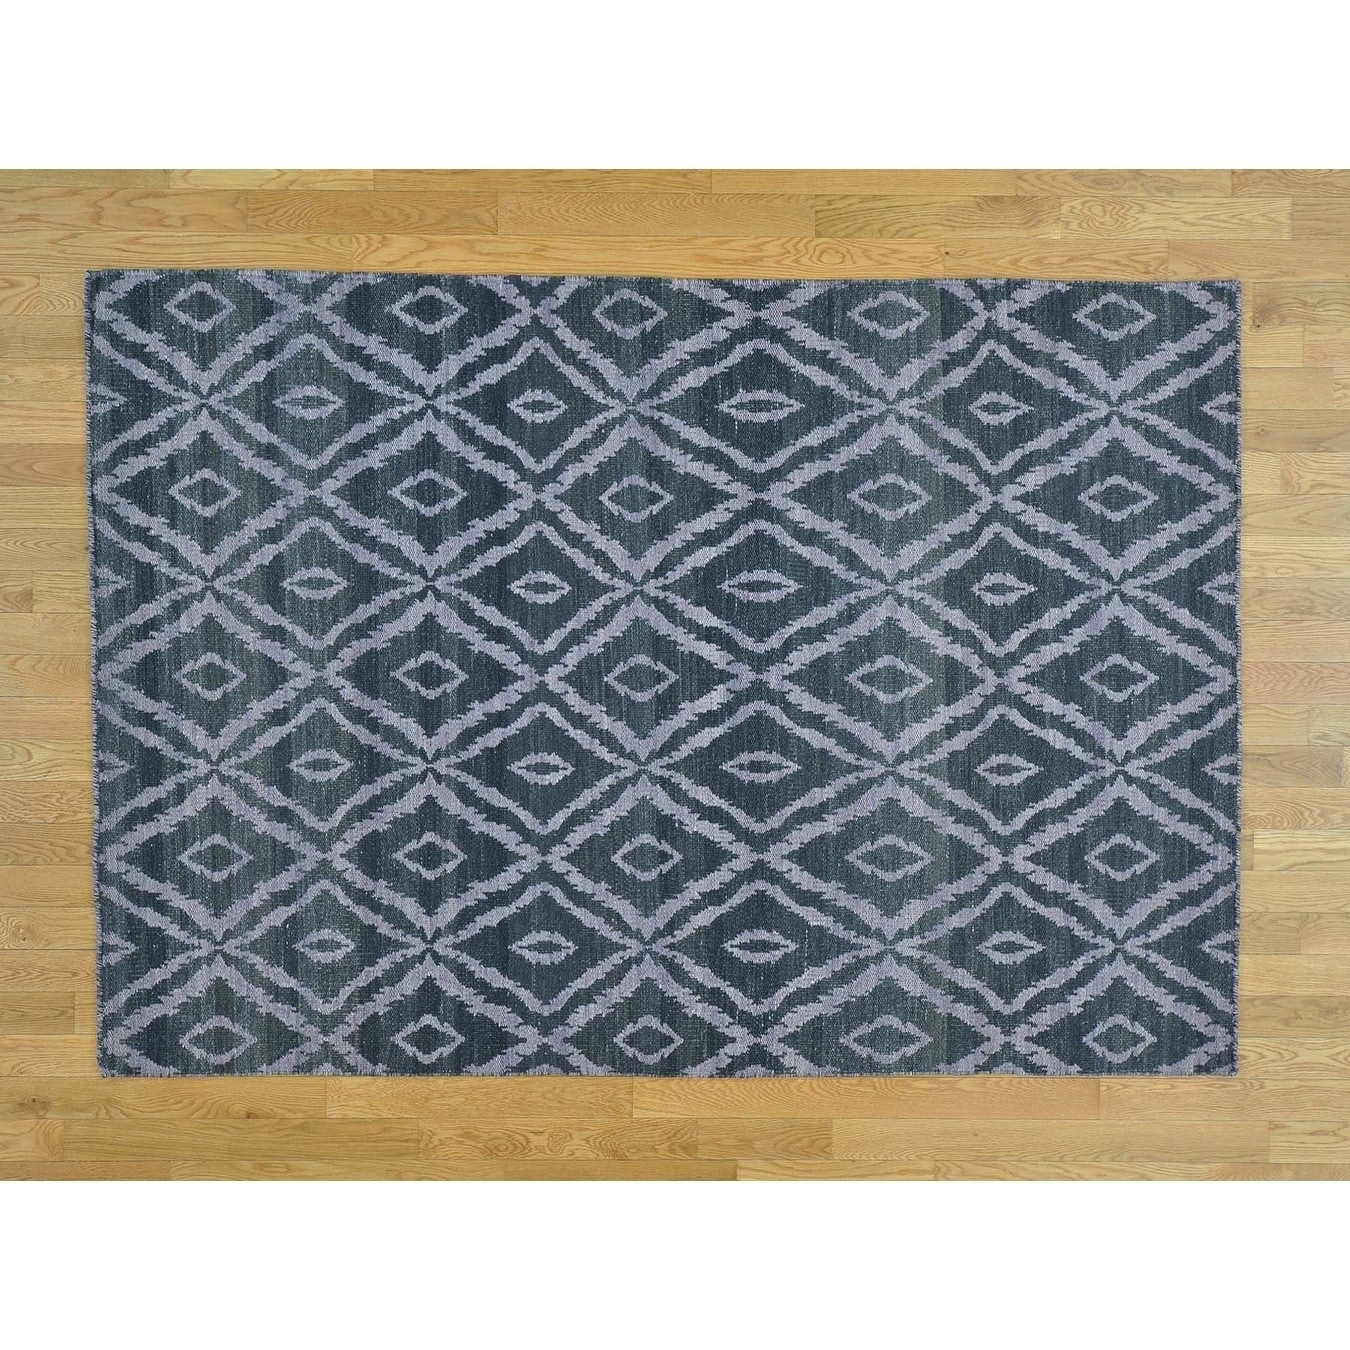 Hand Knotted Black Flat Weave with Wool Oriental Rug - 52 x 75